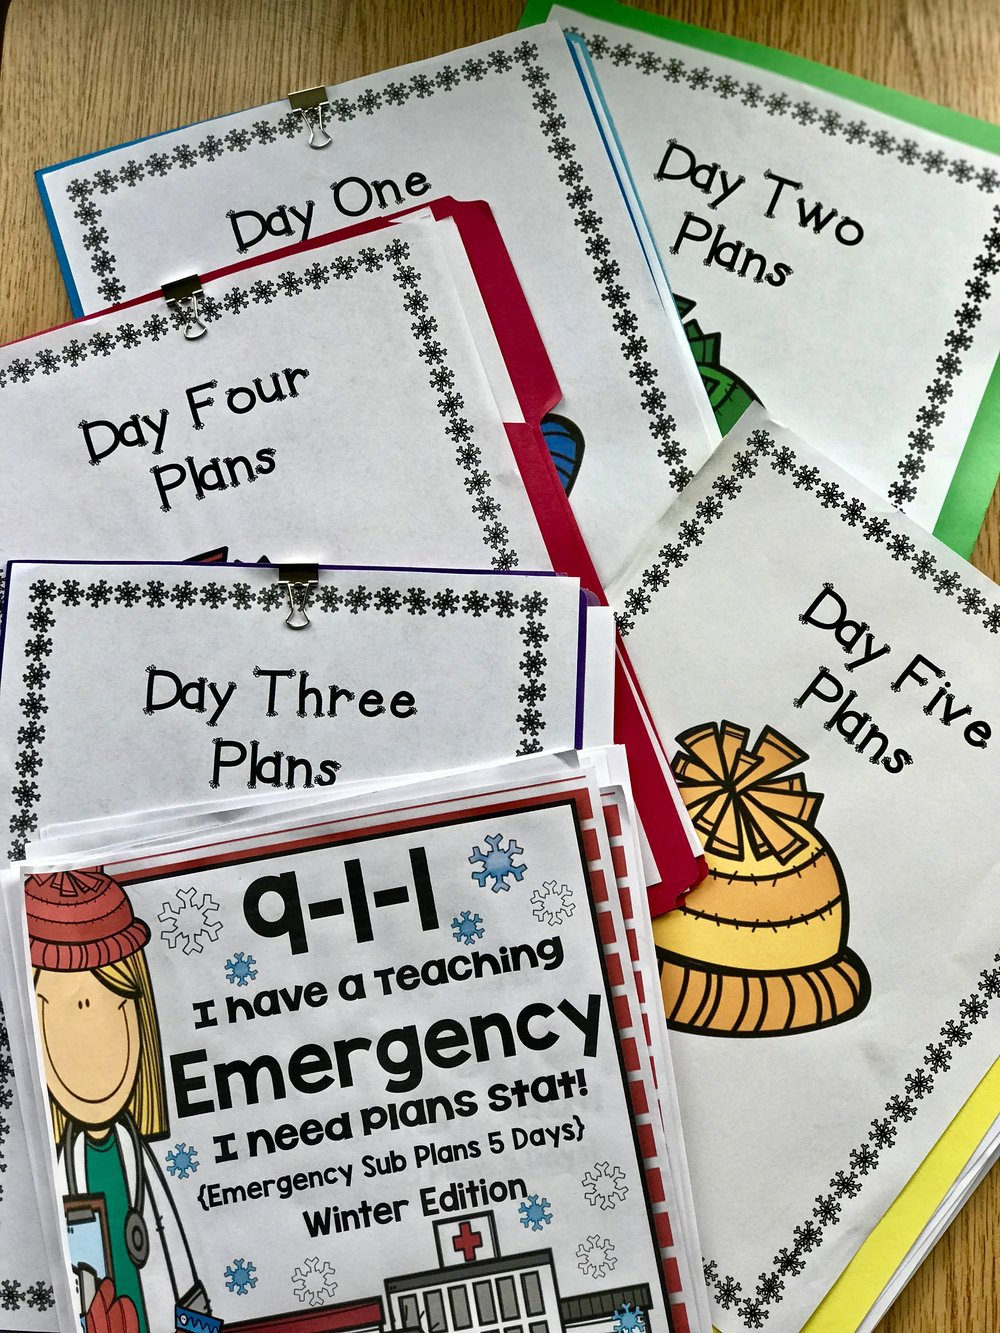 Emergency sub plans Winter Version for 2nd and 3rd grade give teachers peace of mind. Prepared plans give substitute teachers ideas. #emergencysubplans #substituteteacherideas #2ndgrade #3rdgrade